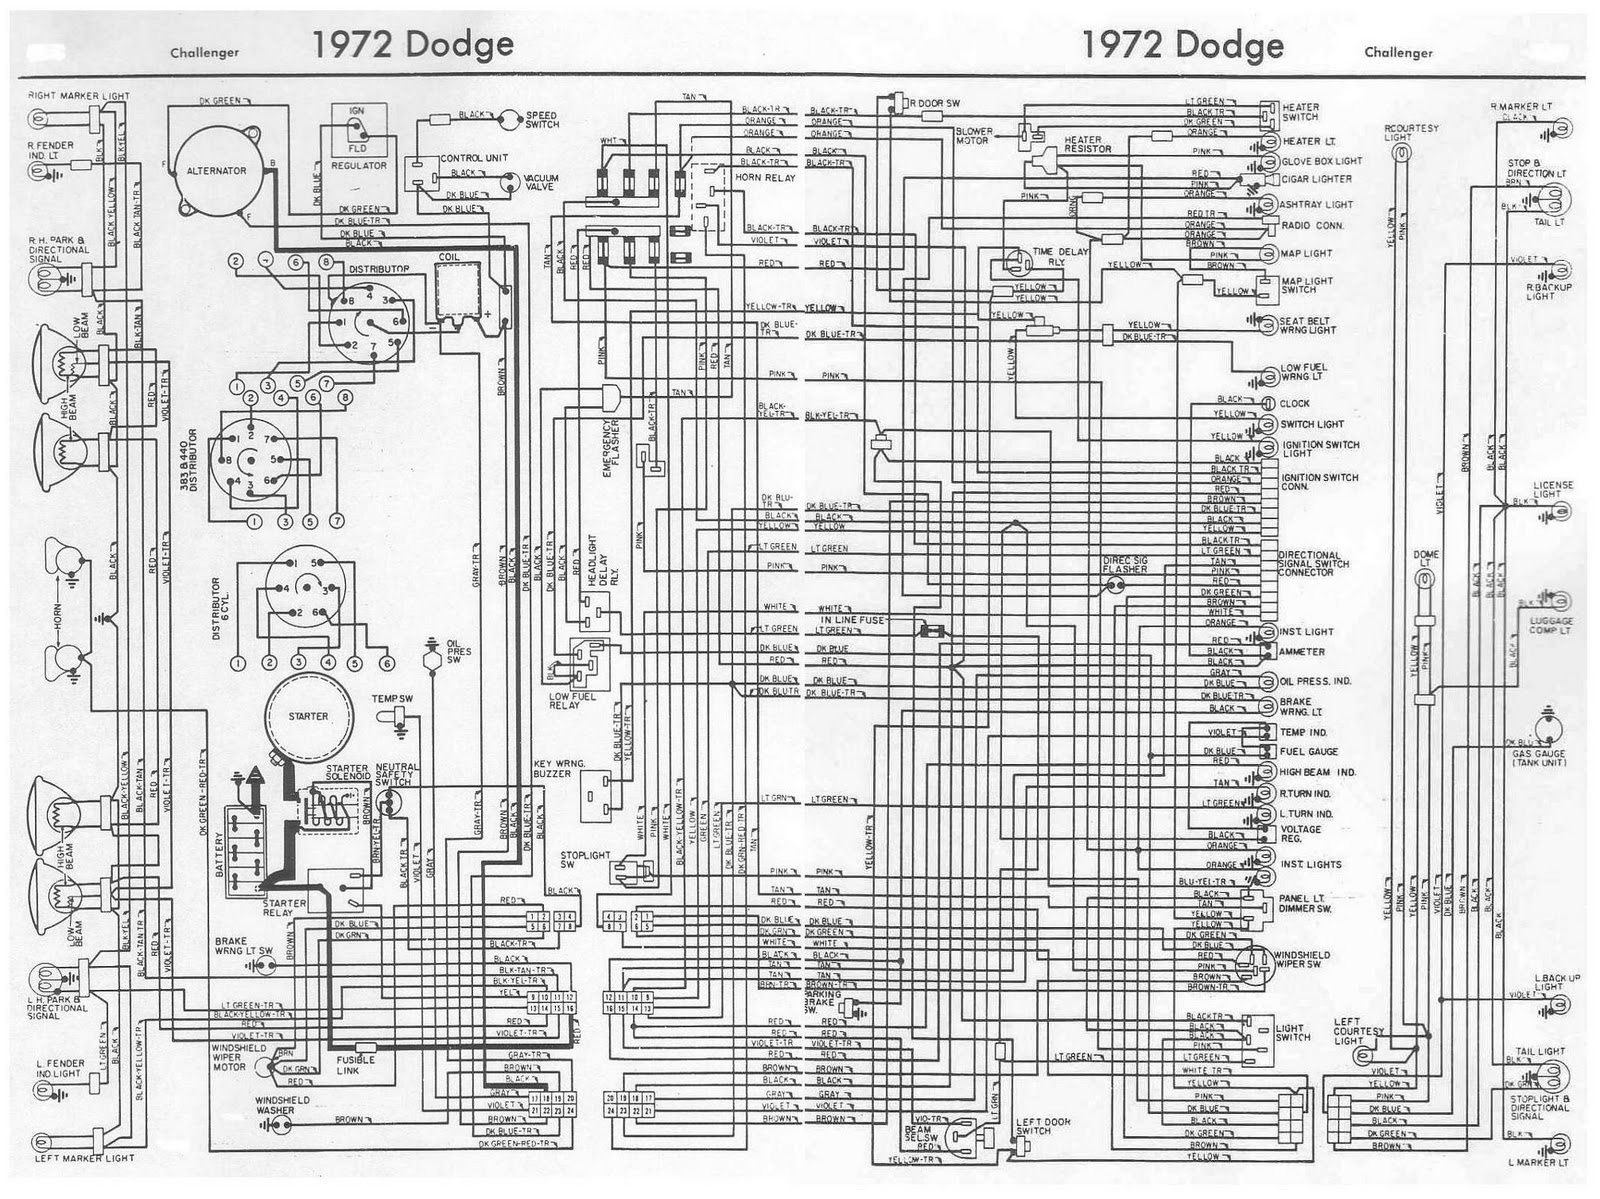 1970 Plymouth Wiring Diagram - Free Wiring Diagram For You • on 1968 barracuda wiring diagram, 1968 charger wiring diagram, 1970 road runner wheels, 1970 road runner horn, 1969 barracuda wiring diagram, 1970 road runner specifications, 1971 road runner wiring diagram, 1973 duster wiring diagram, 1968 gtx wiring diagram, 1972 duster wiring diagram, 1962 corvette wiring diagram, 1967 corvette wiring diagram, 1968 firebird wiring diagram, 1969 camaro wiring diagram, 1967 gto wiring diagram, 1969 corvette wiring diagram, 1970 road runner carburetor, 1968 corvette wiring diagram, 1969 road runner wiring diagram, 1971 corvette wiring diagram,